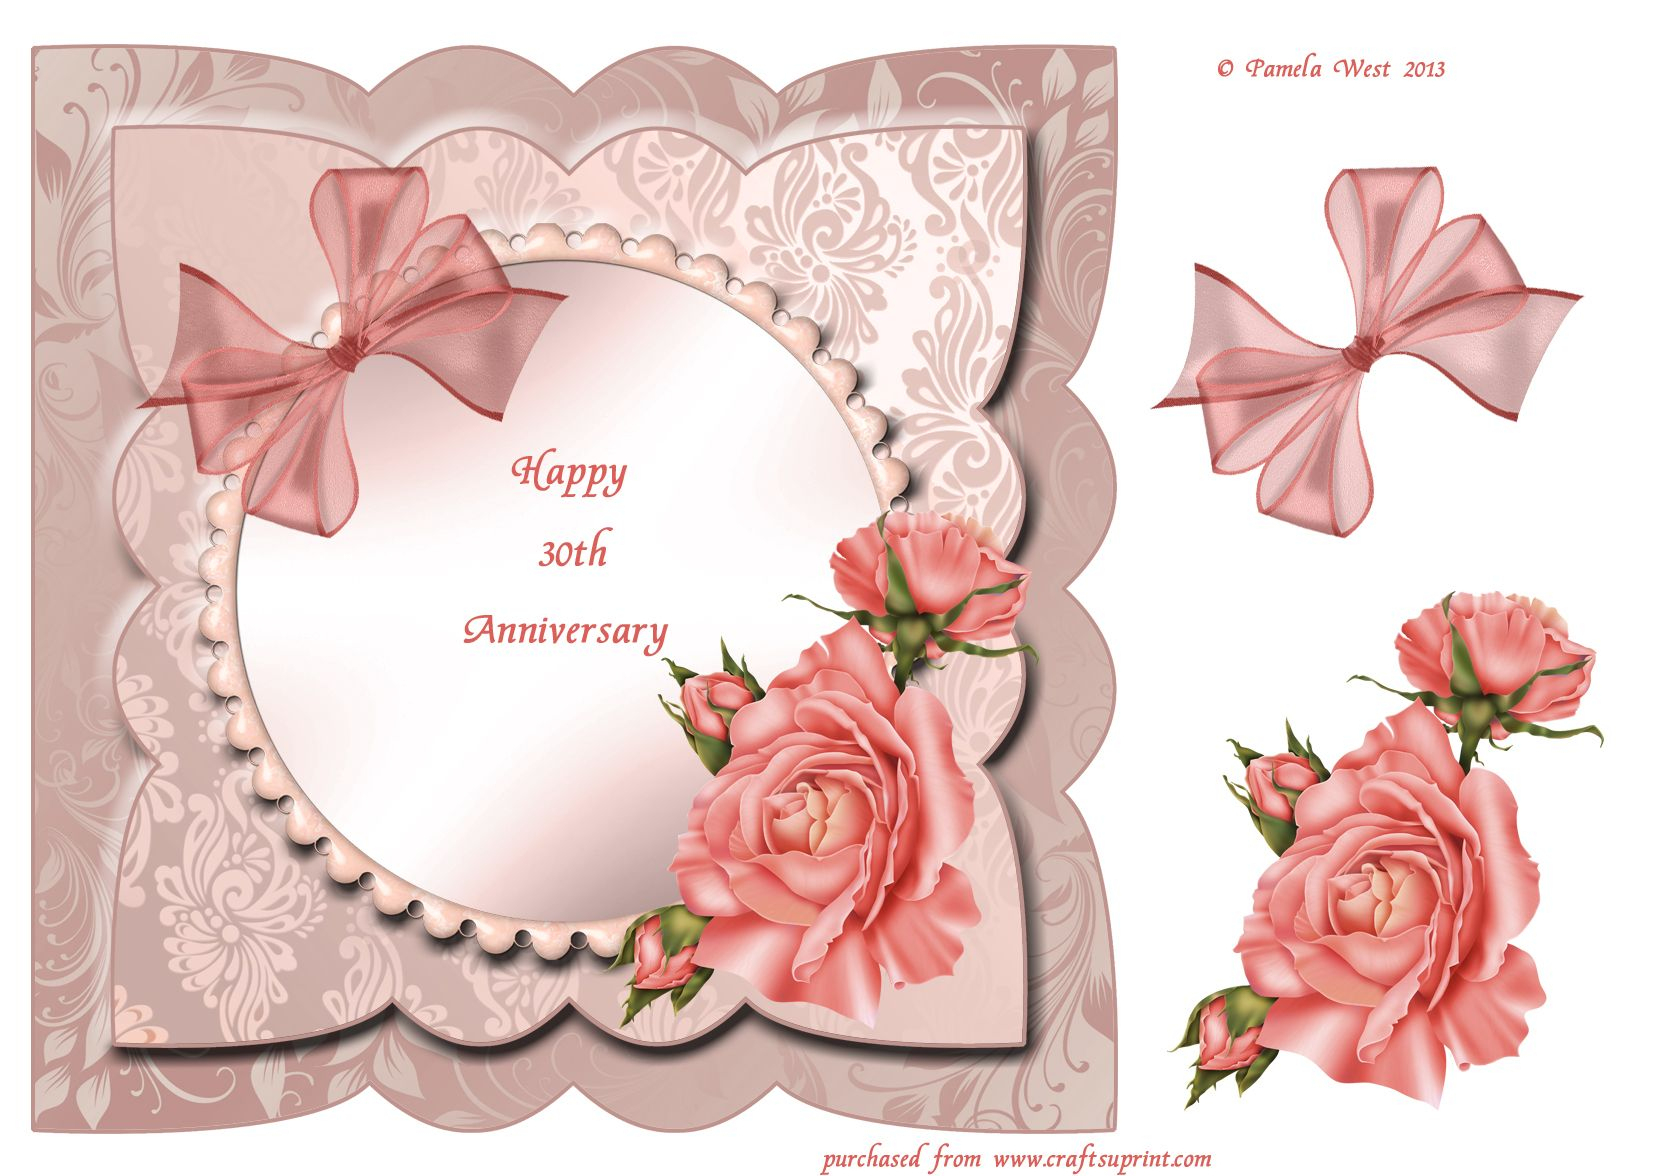 Pinbyn.arda Arda On Dekupaj | Decoupage, Cards, Wedding - Free Printable Decoupage Images